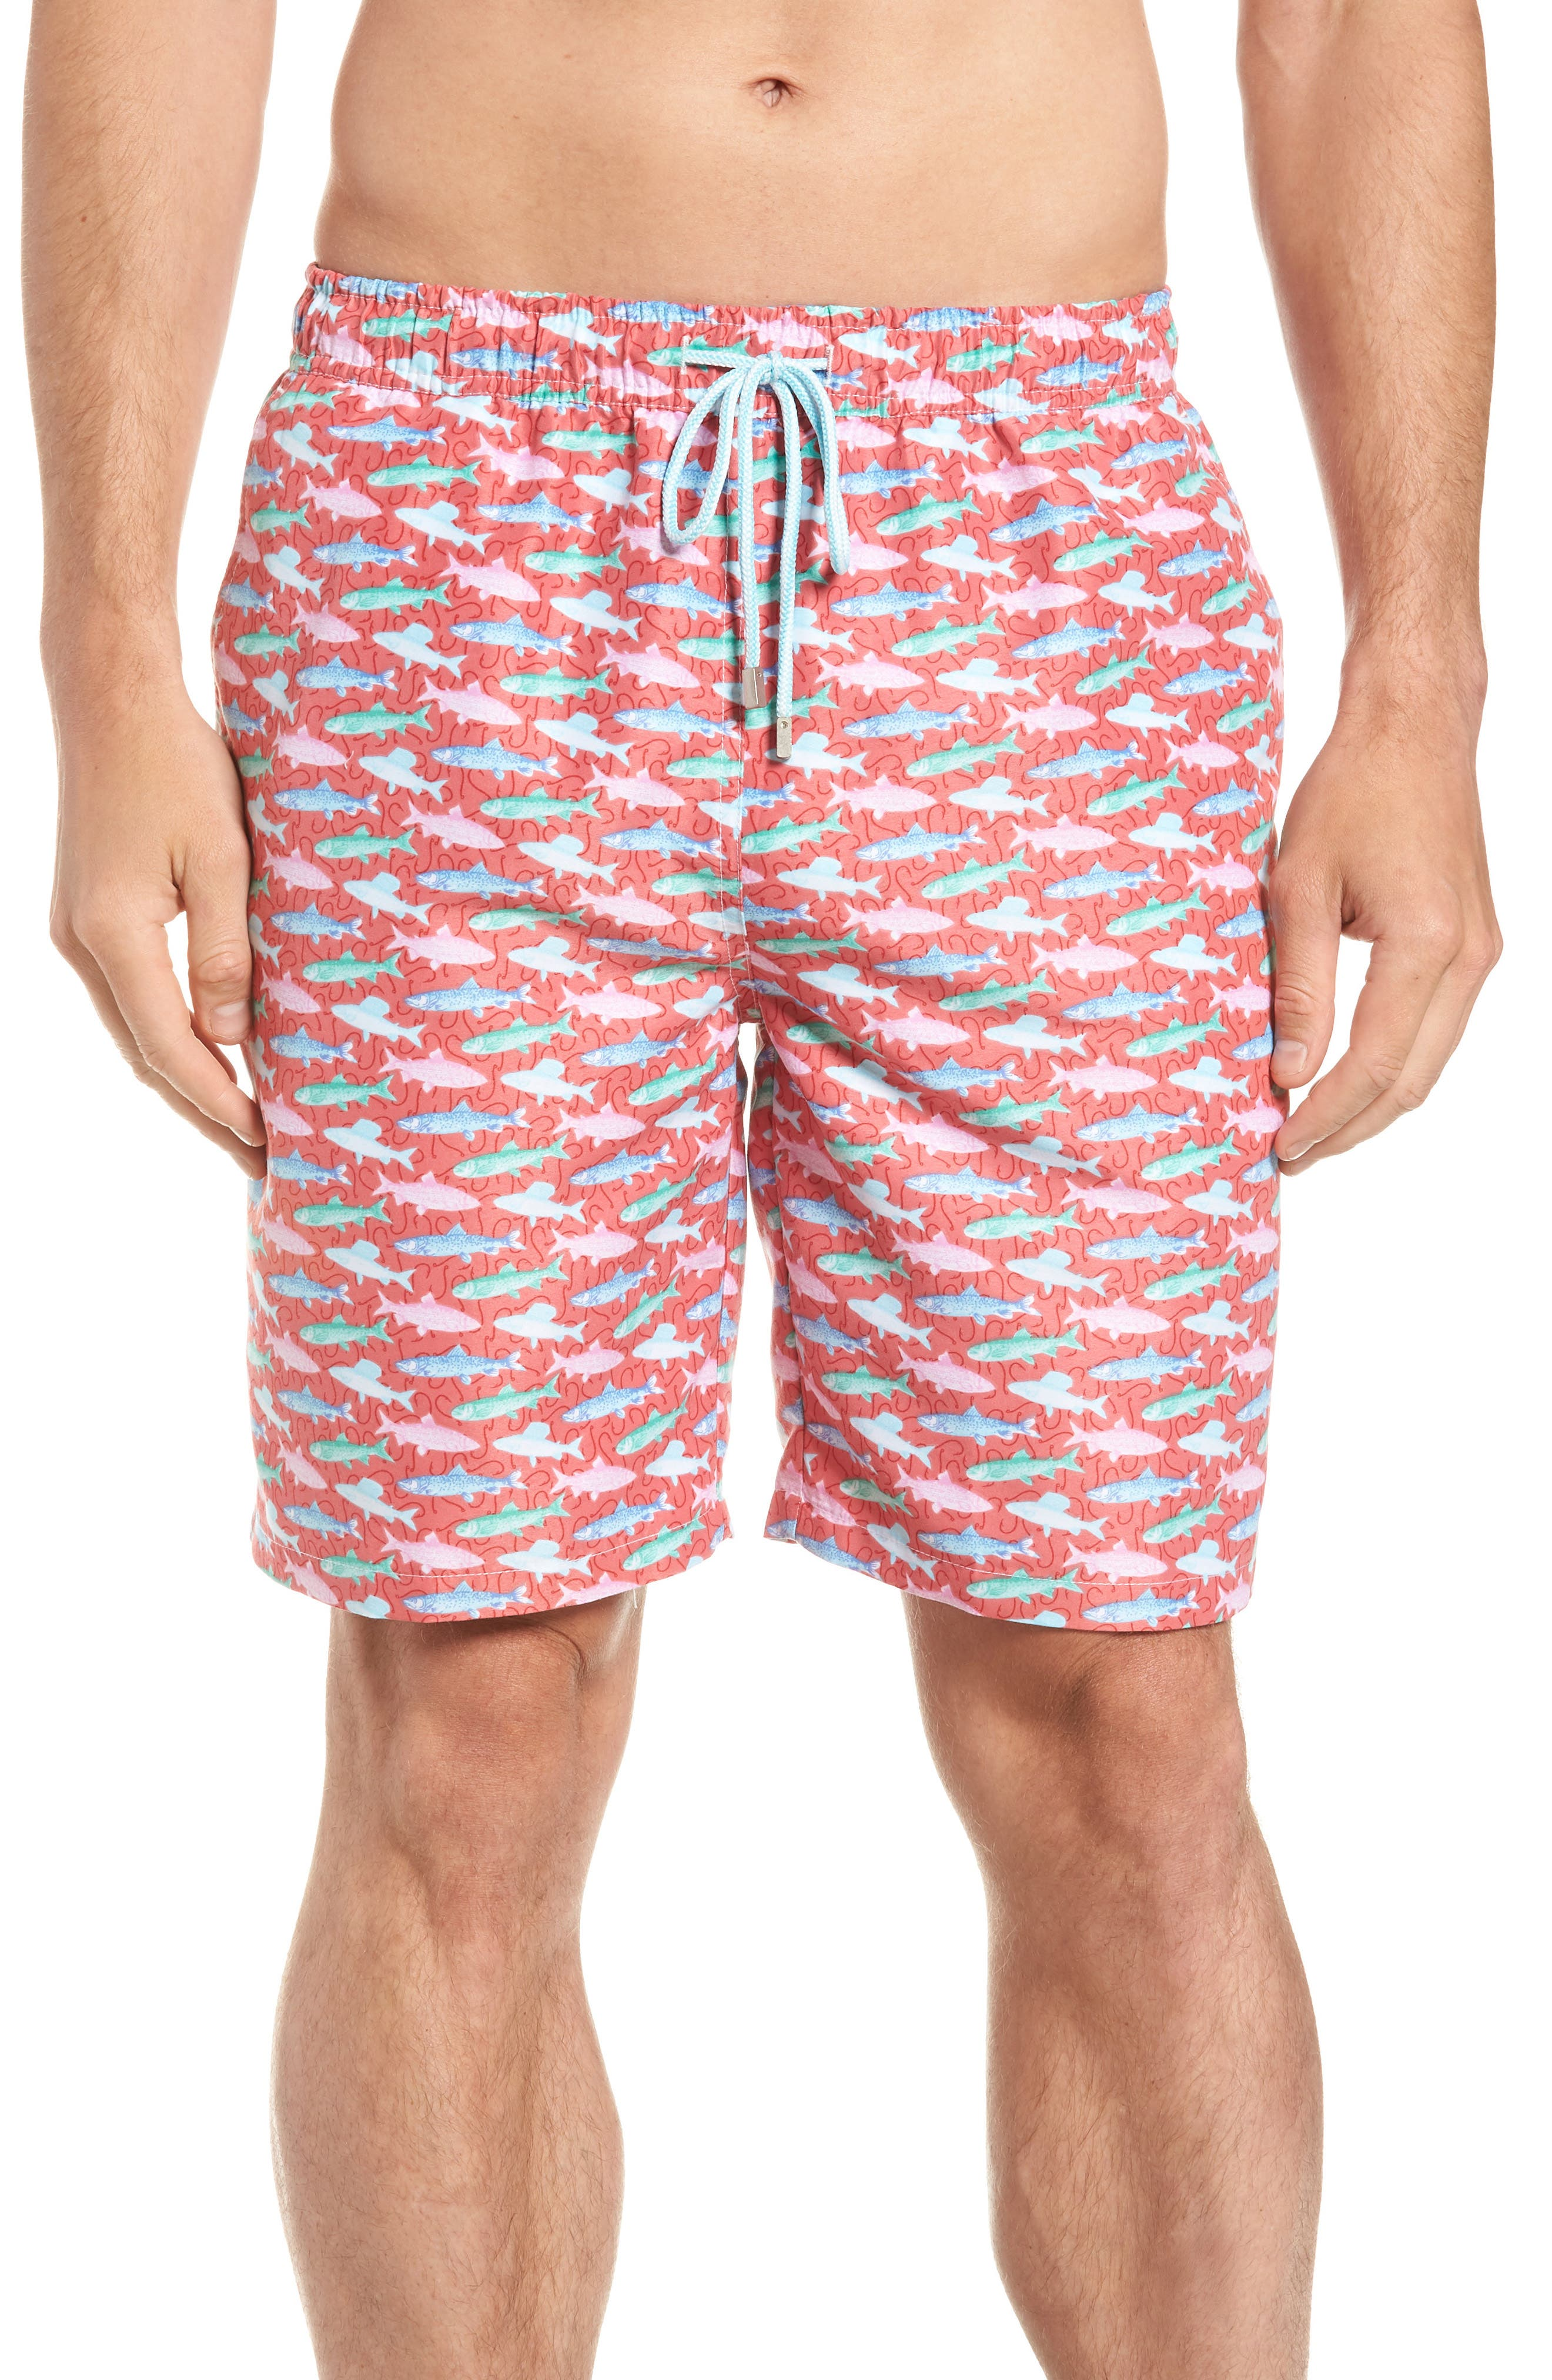 Fishermans Catch Swim Trunks,                             Main thumbnail 1, color,                             Cape Red